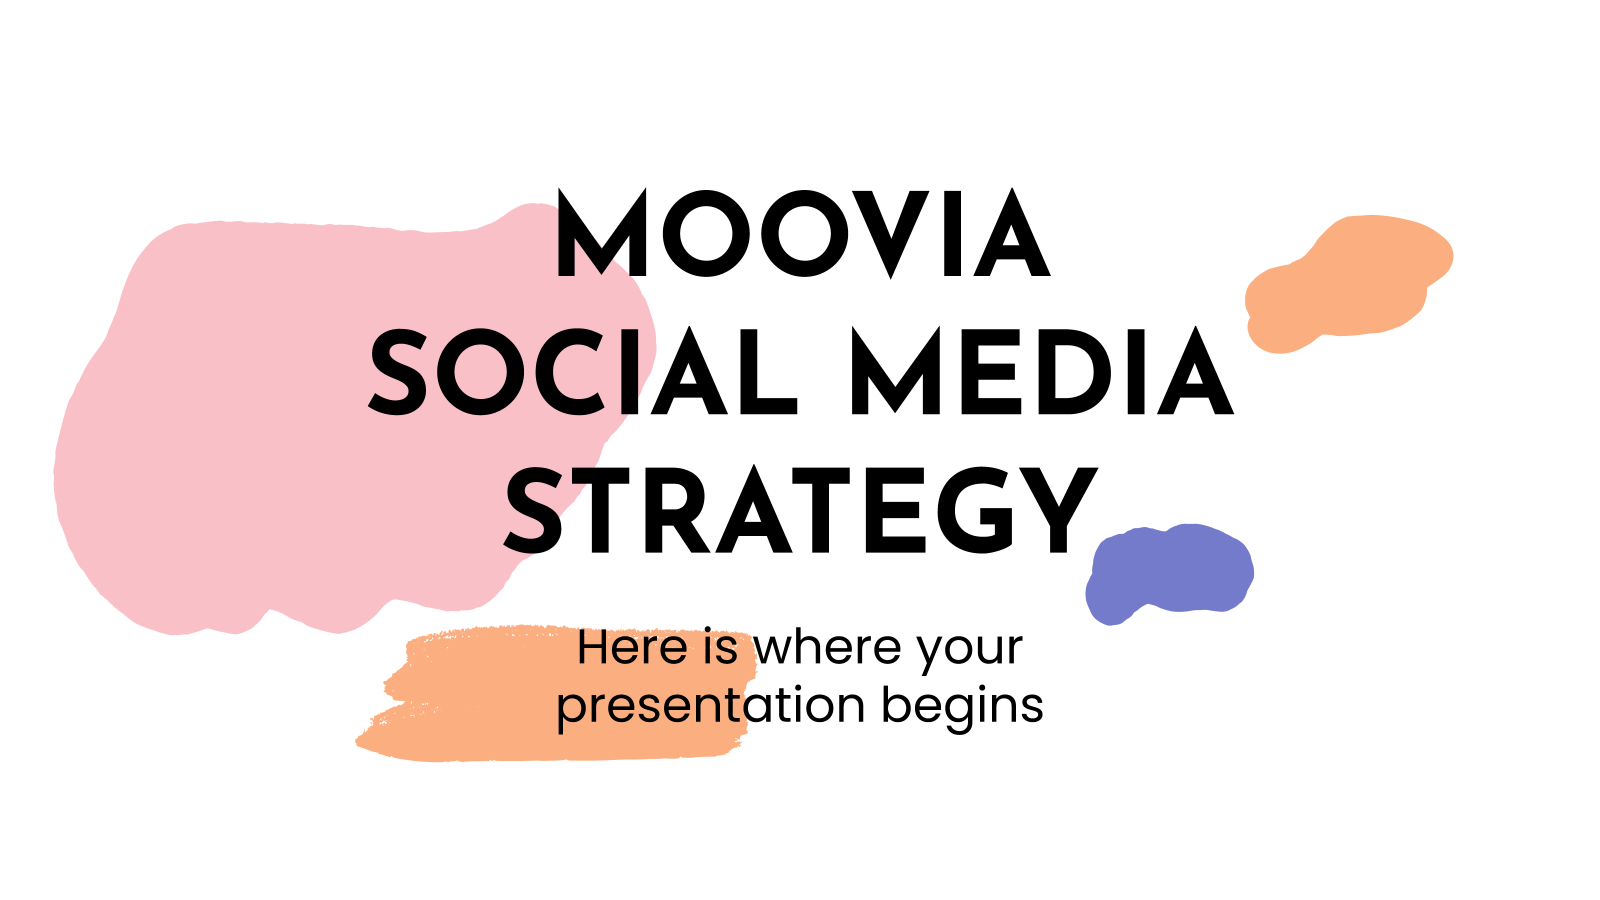 Moovia social media strategy presentation template